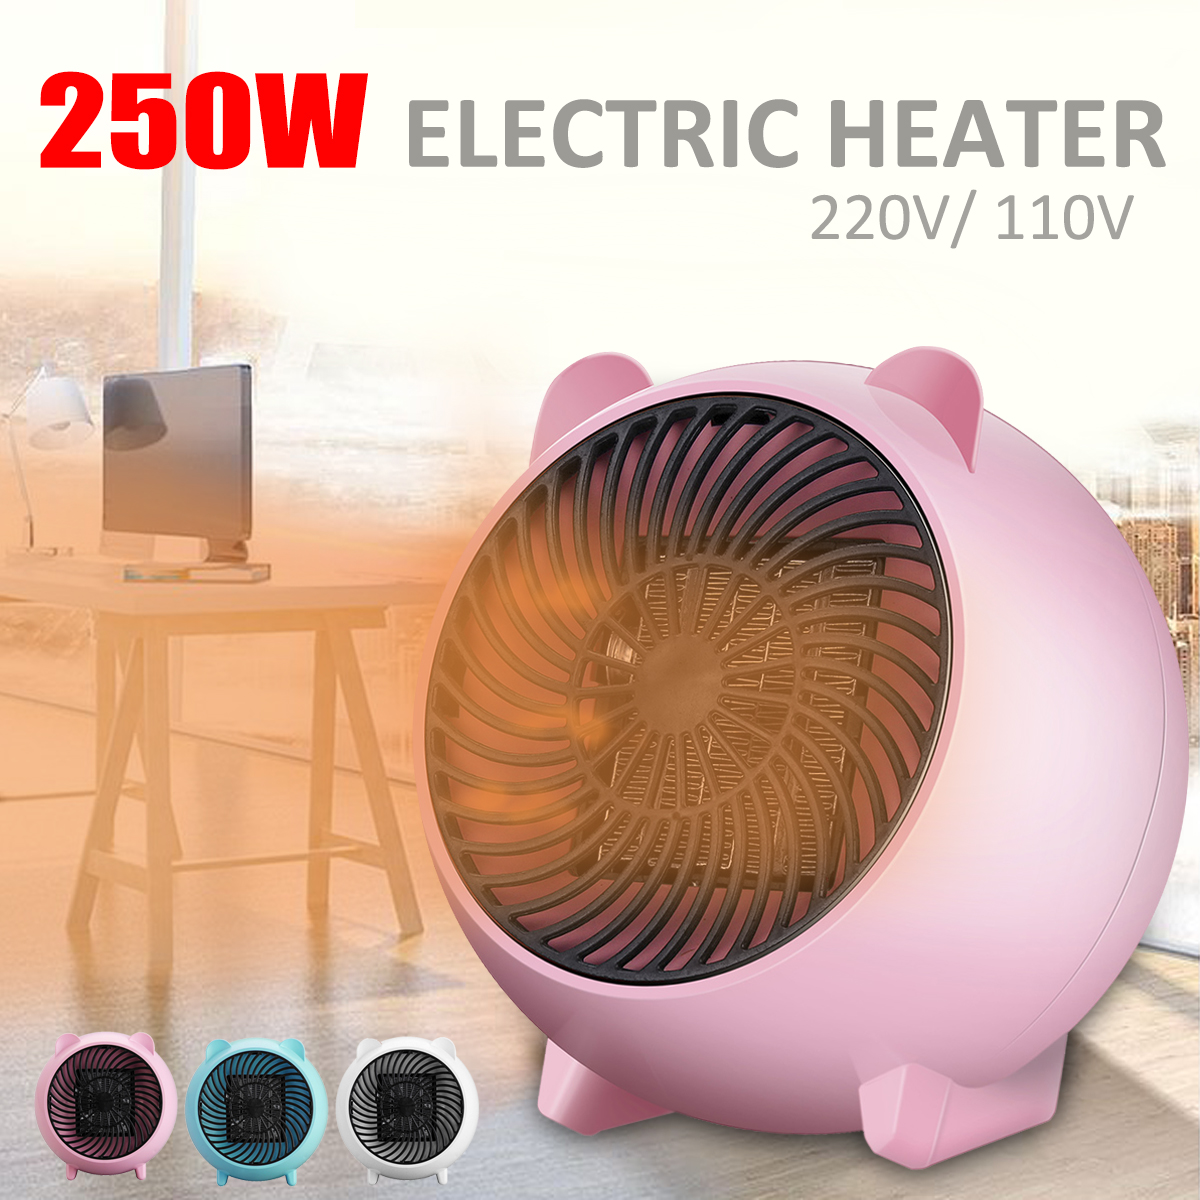 3 Colors Portable Electric Heater Space Automatic Heating Fan Warmer Air Blower Quiet Home Office 250W 110V Environmental Protection Power Saving Winter Heater Bask Fan